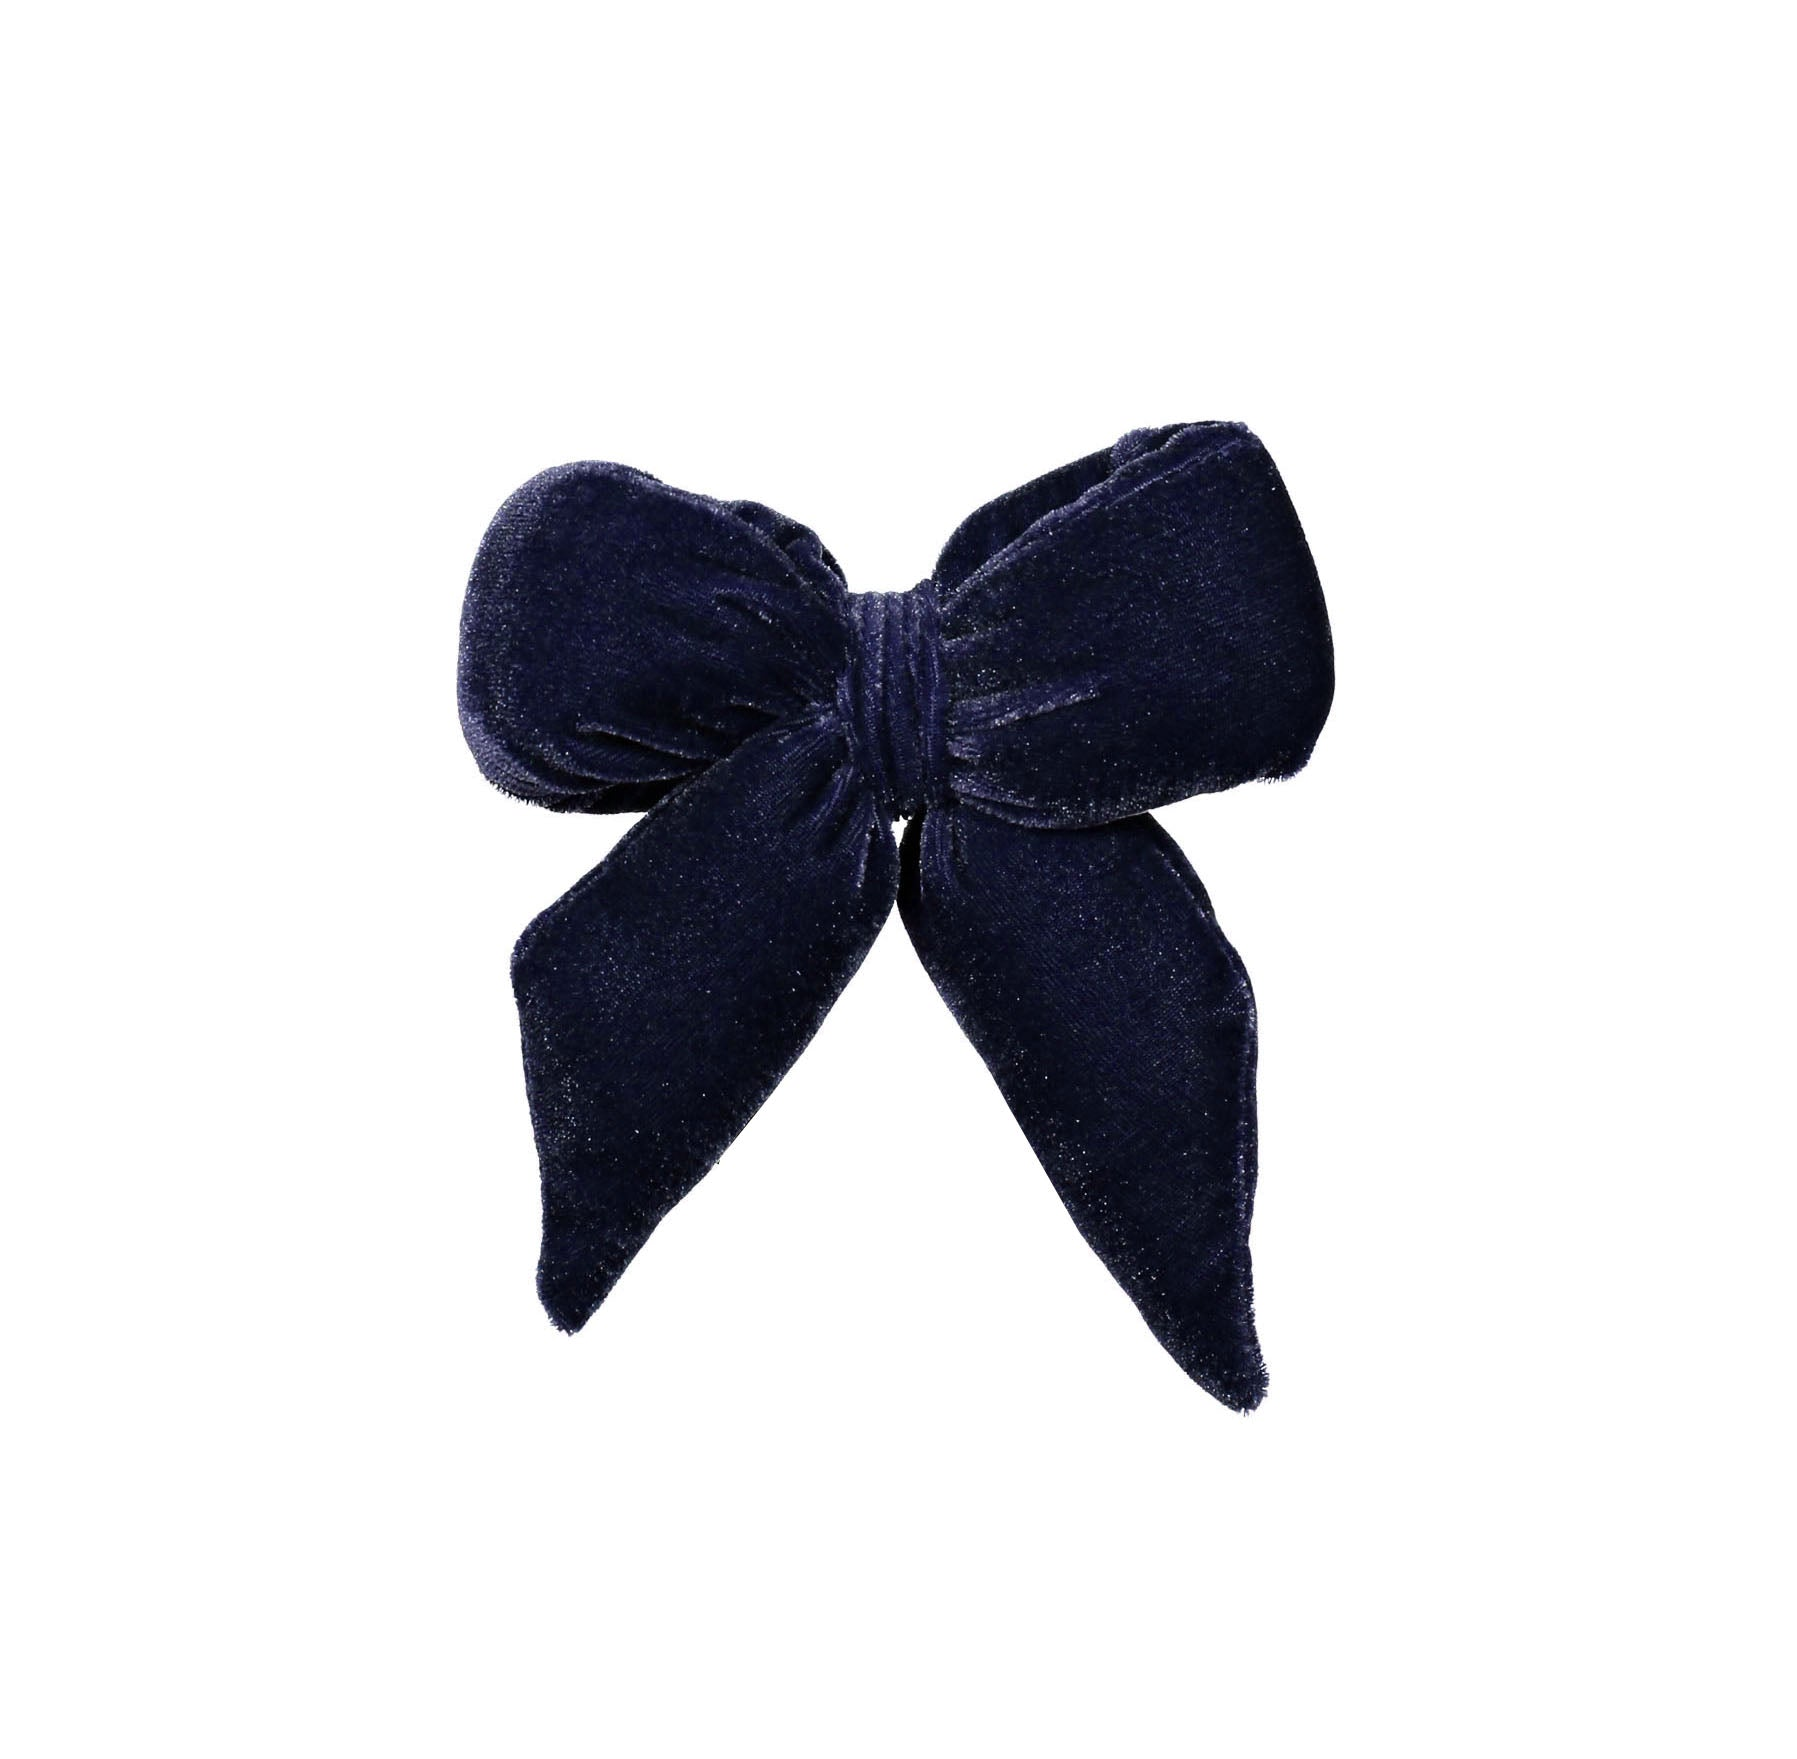 Knot Hairbands Twilight Blue Wild Bow Clip